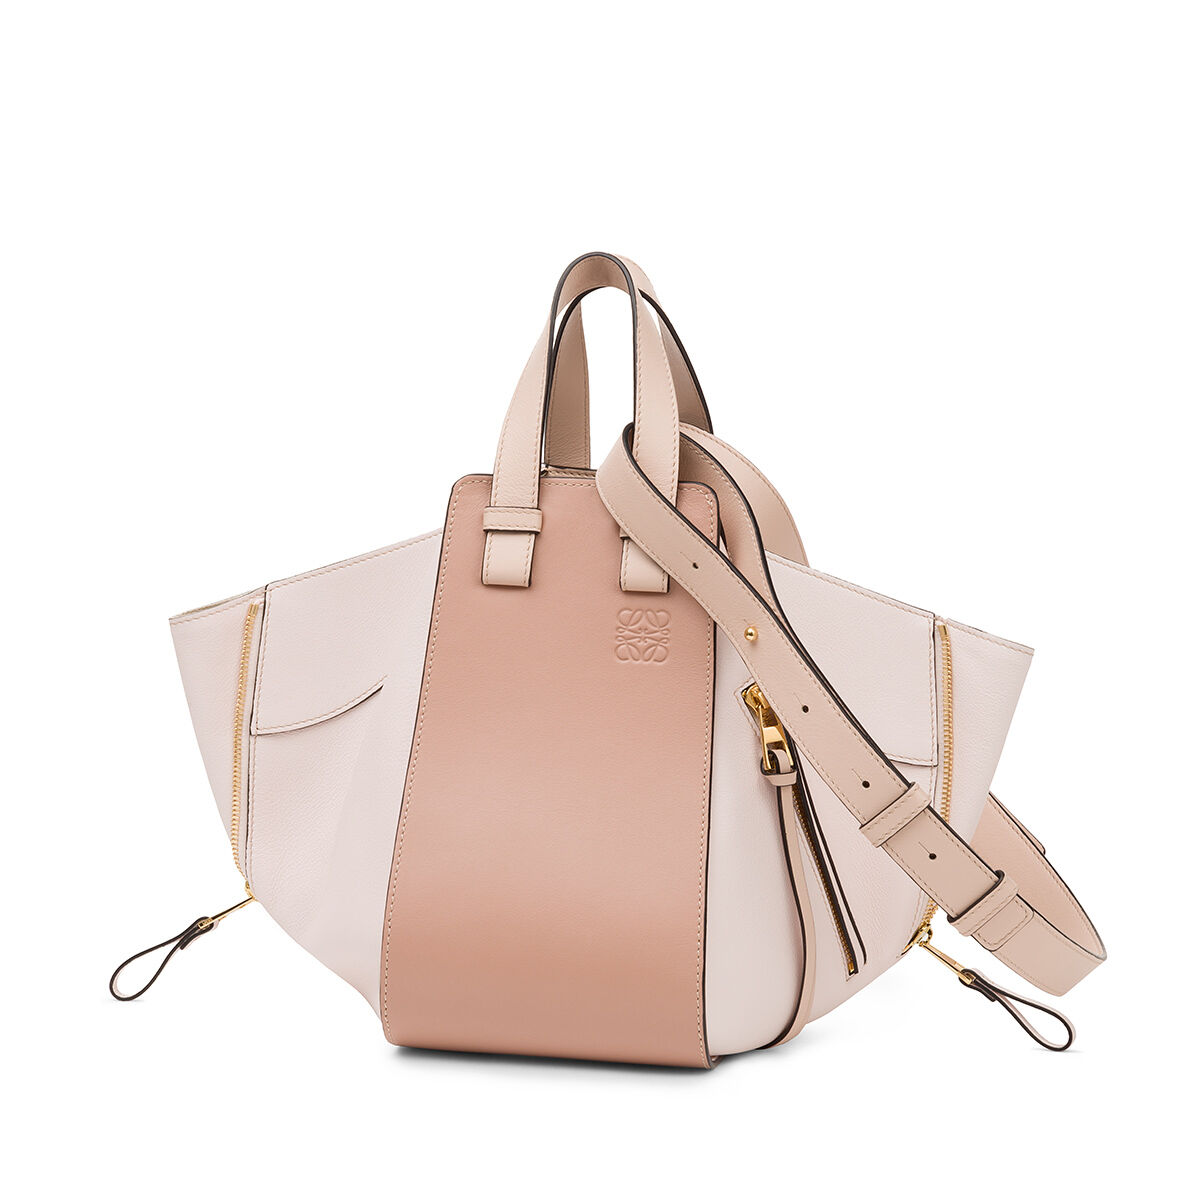 LOEWE Hammock Small Bag Blush Multitone all